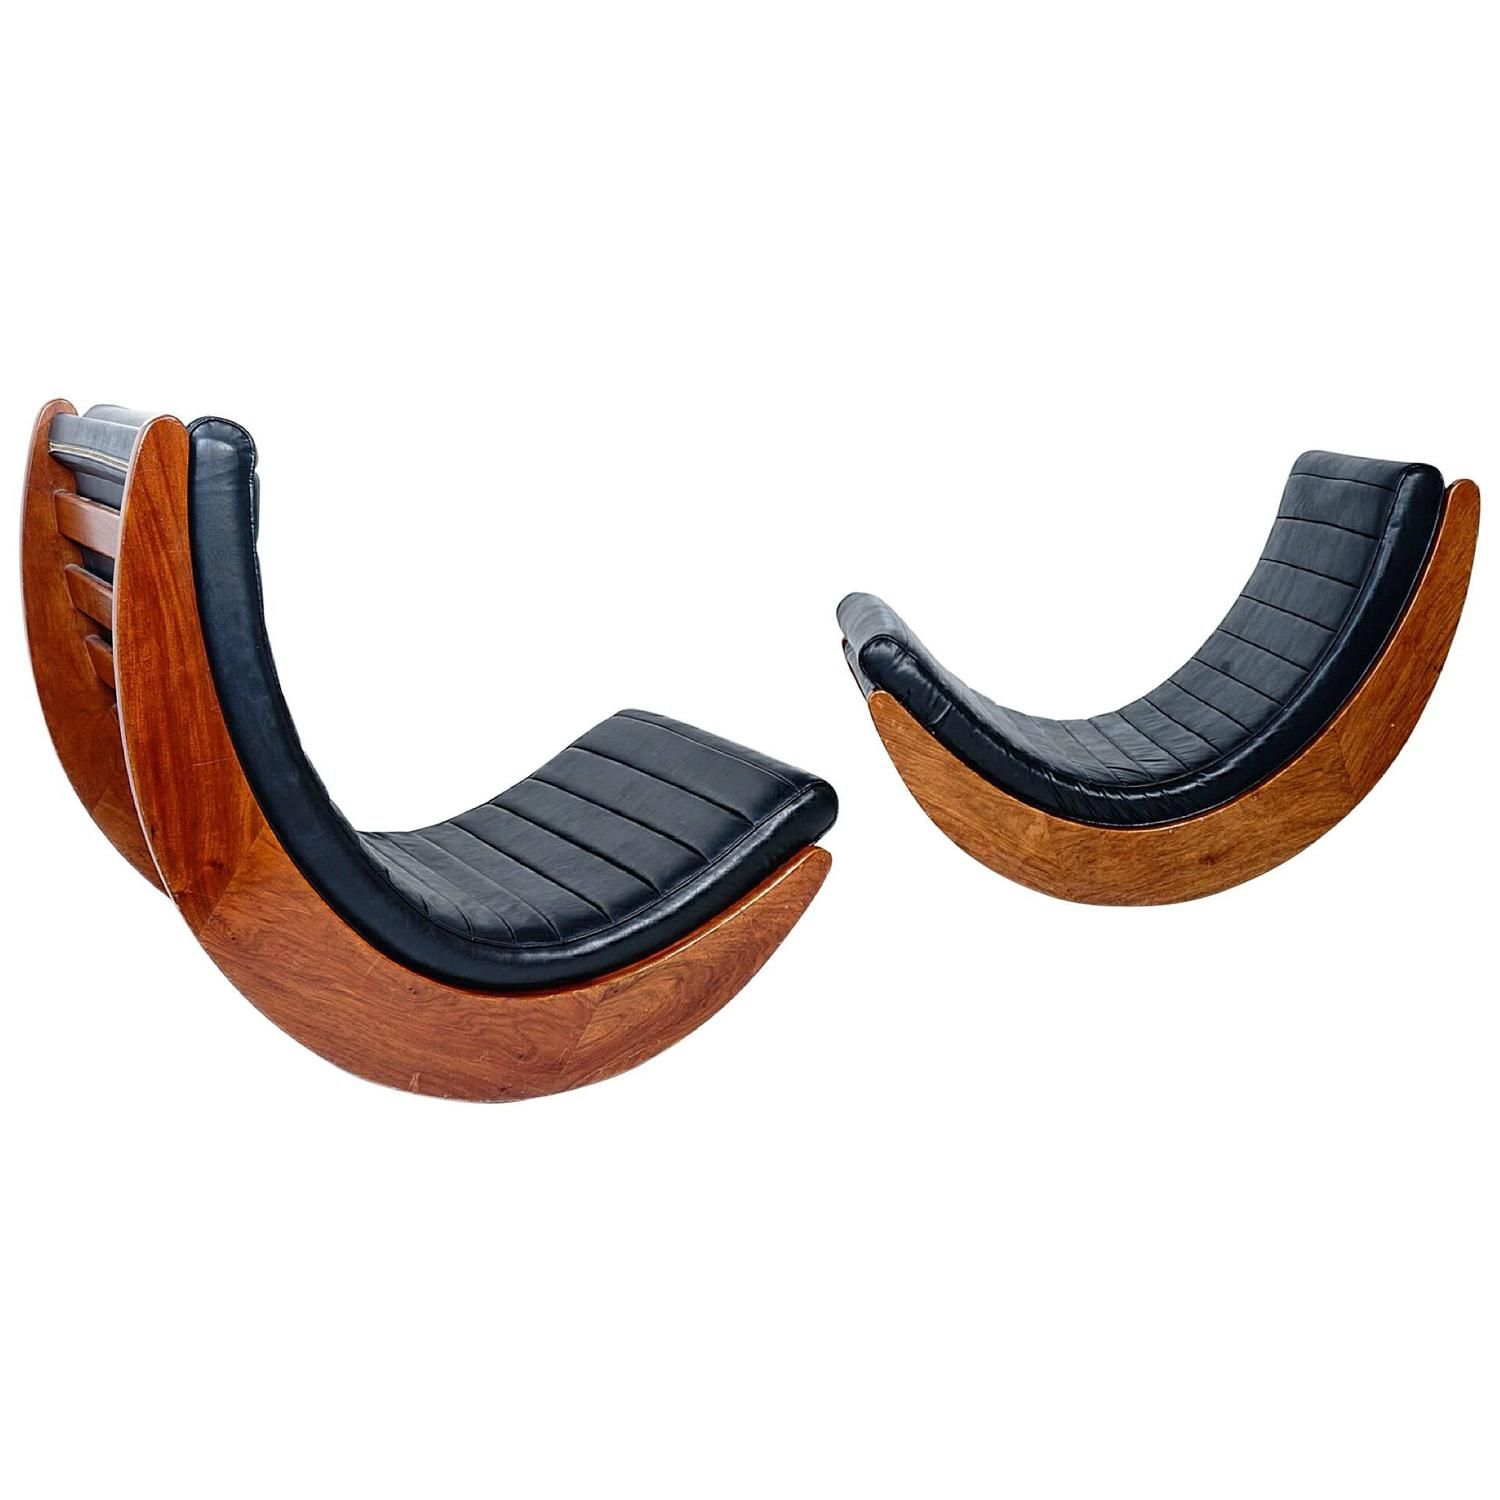 Rare Pair Of Verner Panton Leather Relaxer Chairs For Rosenthal   From A  Unique Collection Of